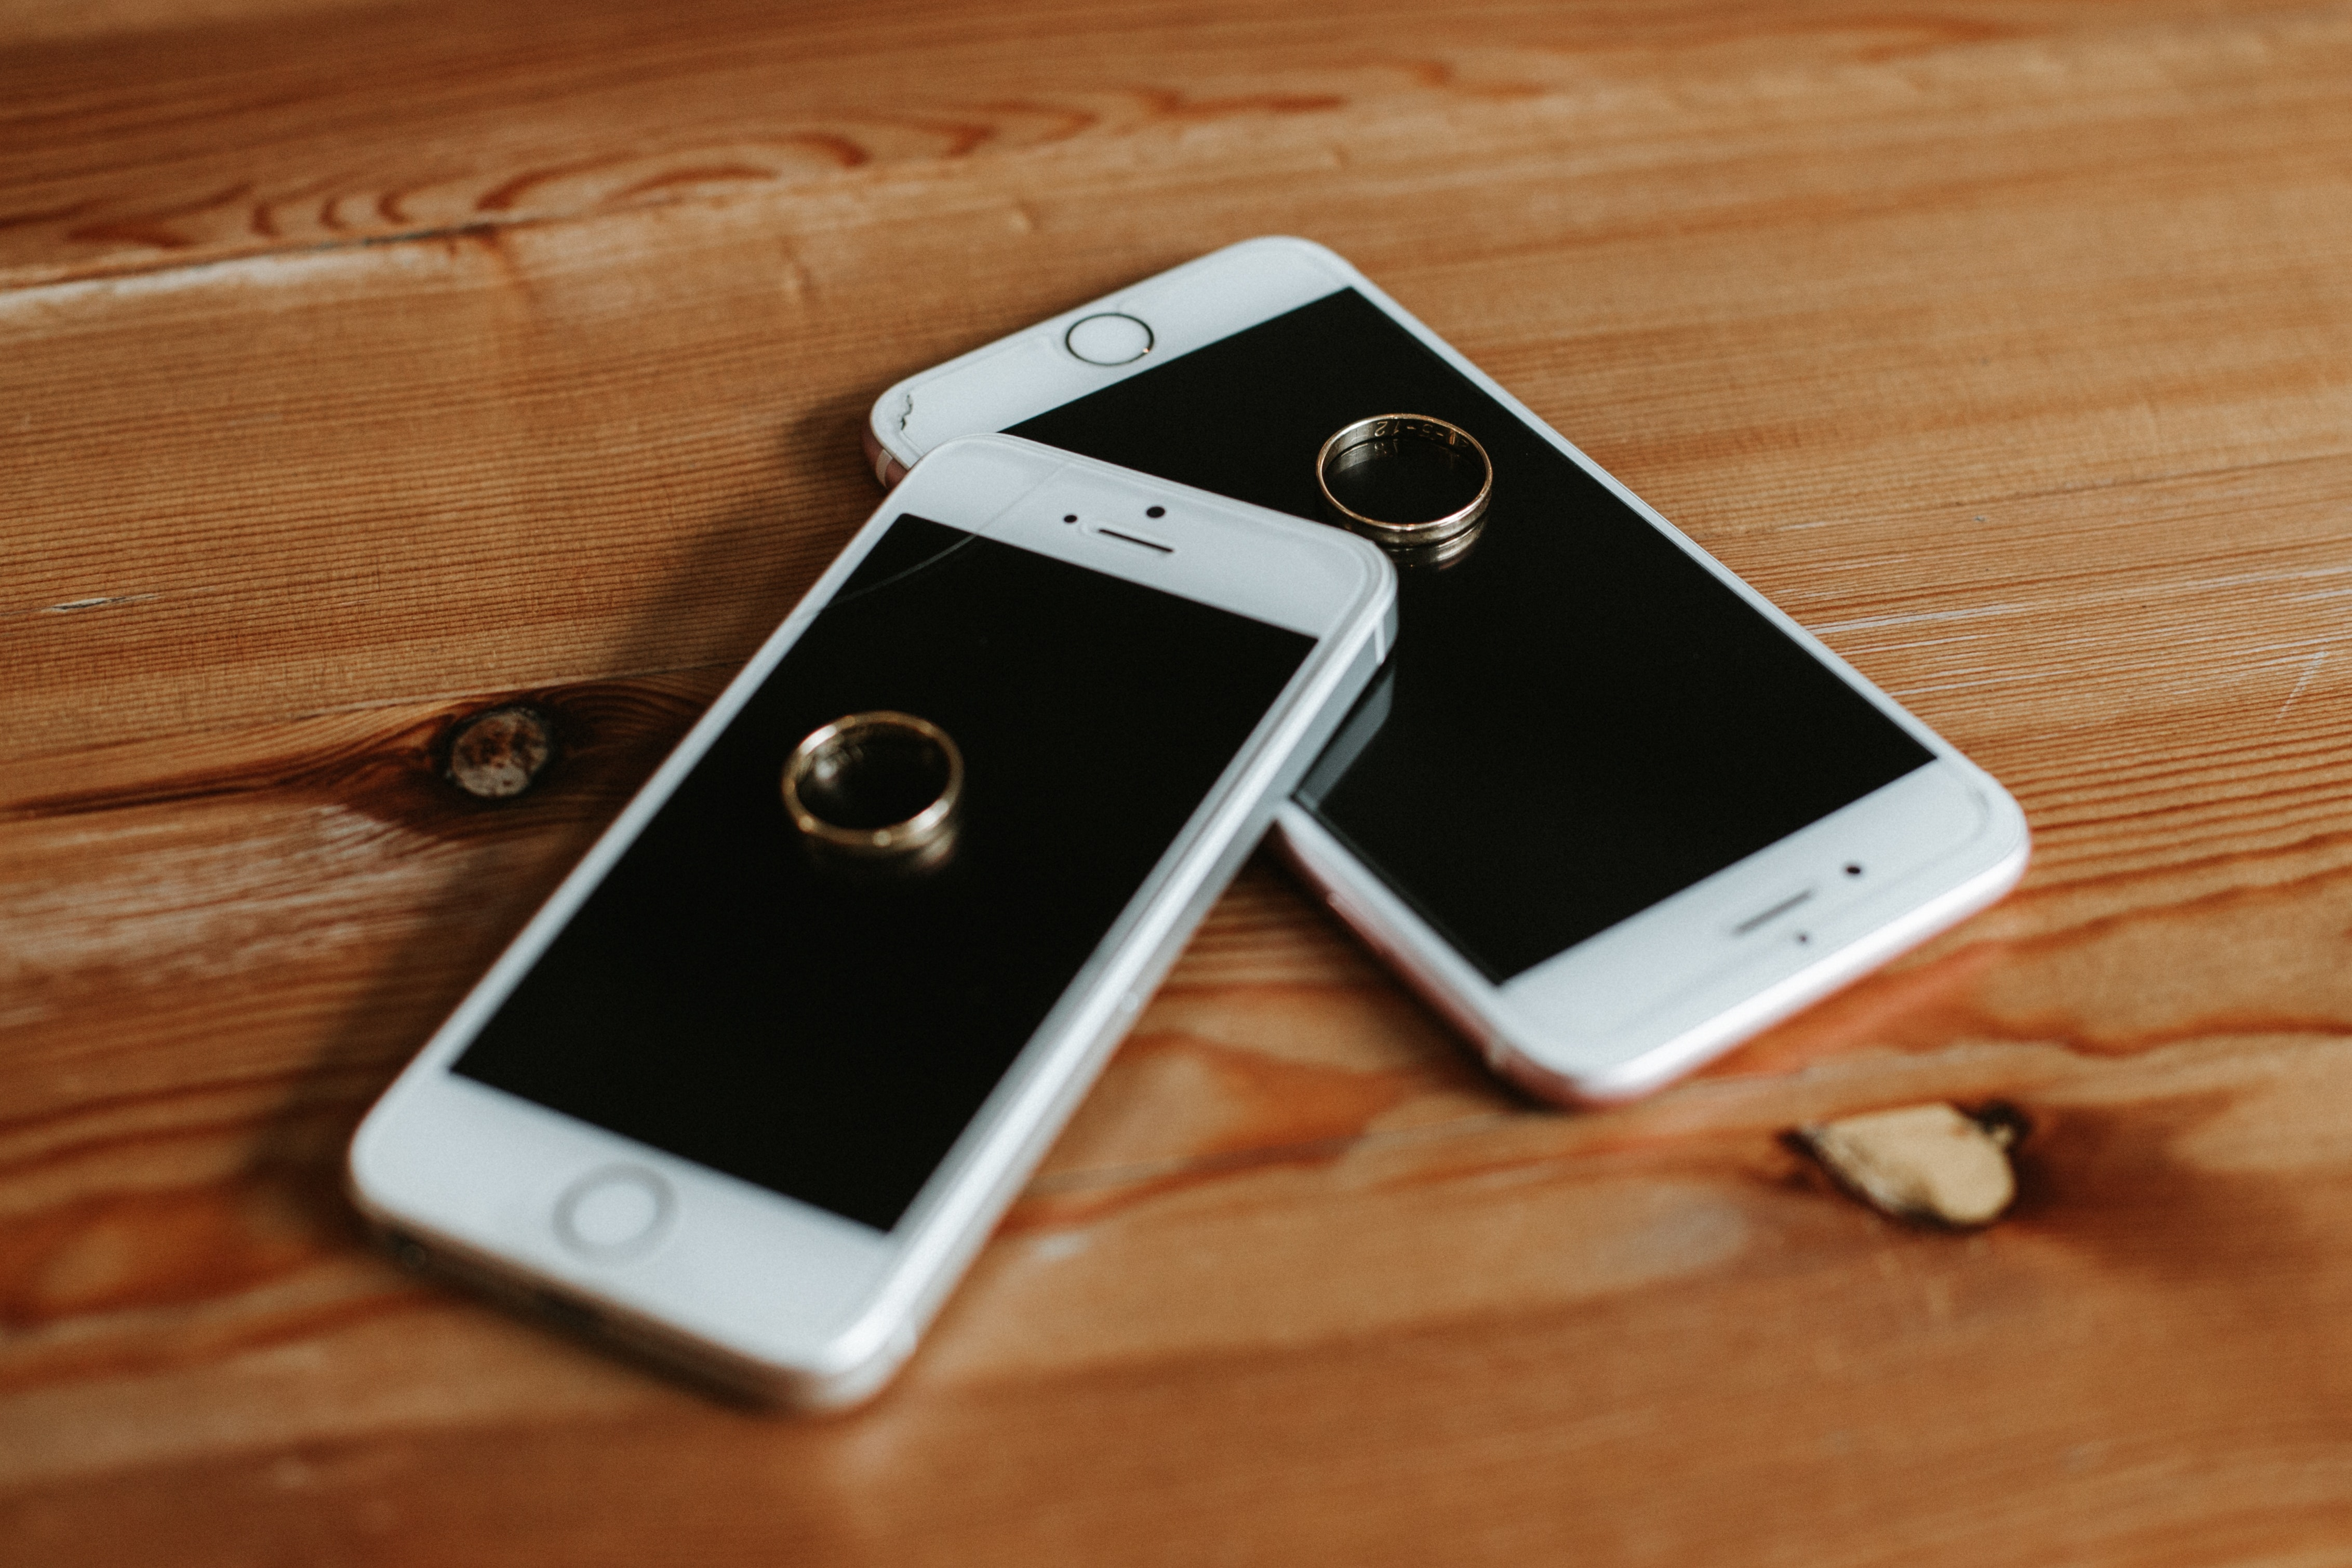 Two Rose Gold Iphone 6s on Brown Wooden Surface, Business, Wireless, Telephone, Technology, HQ Photo